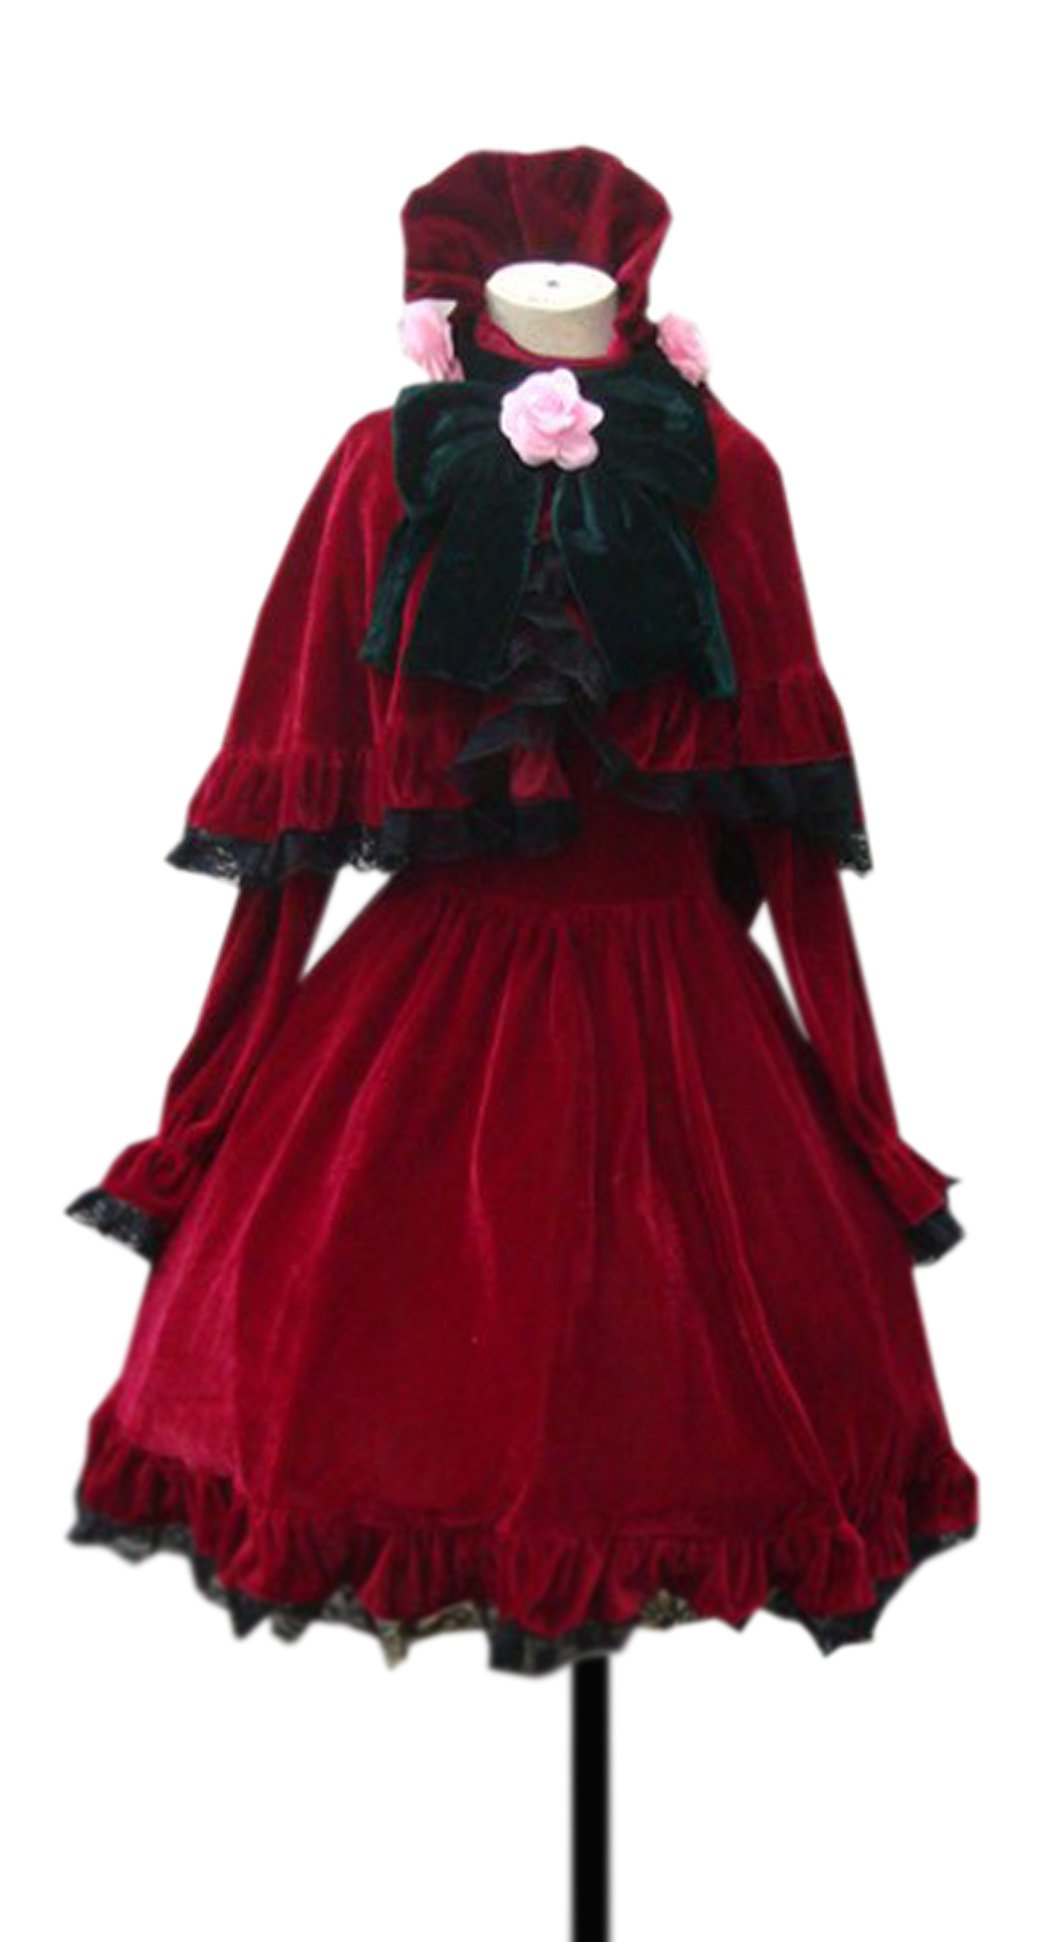 Dreamcosplay Rozen Maiden Shin ku Red Outfits Cosplay Costume